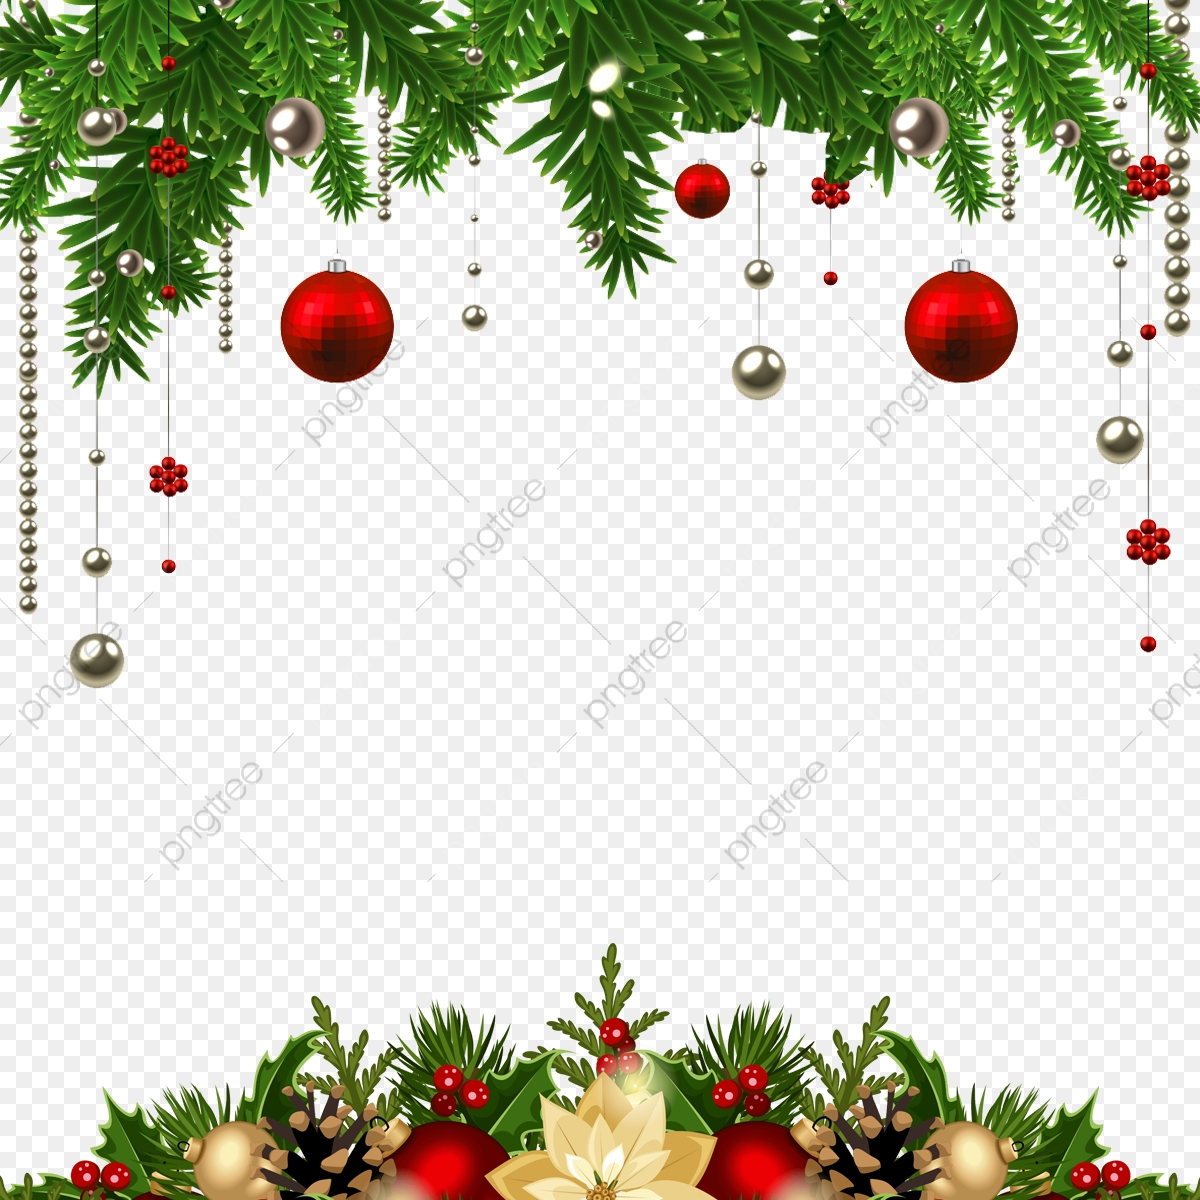 Christmas Graphics Transparent.Christmas Graphic Christmas Vector Christmas Background